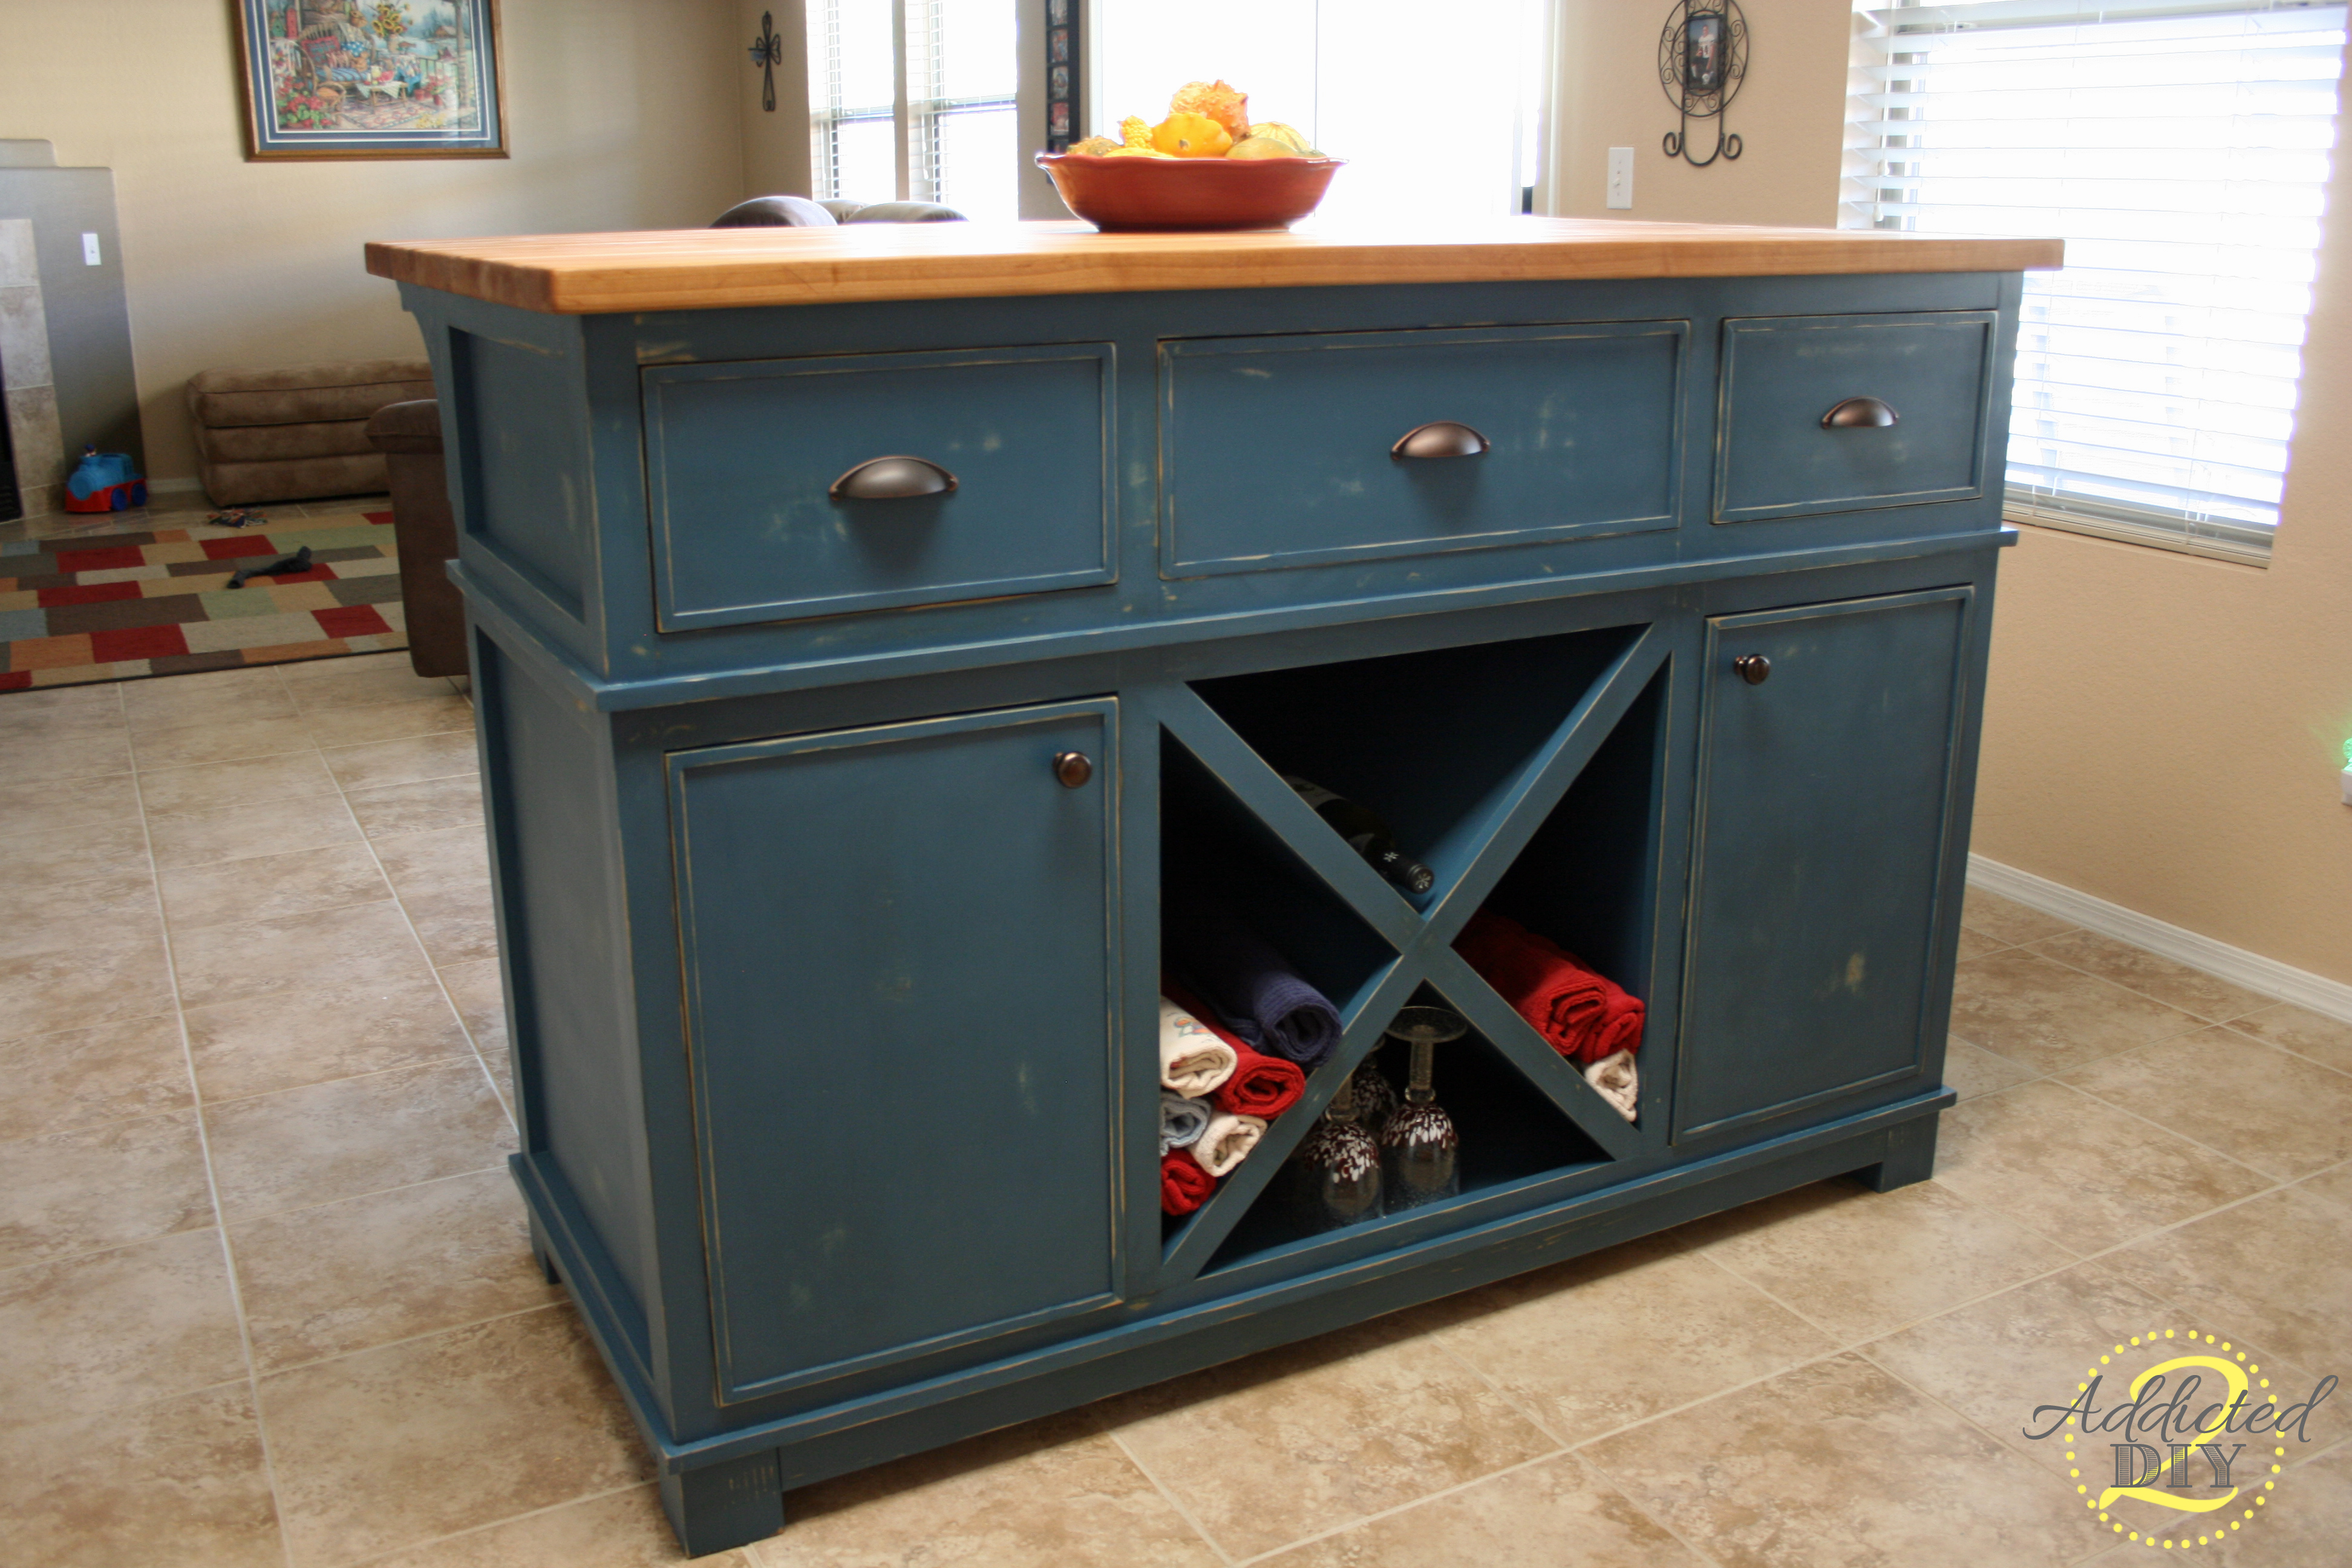 5 Things You Need To Do Before Making a Kitchen Island